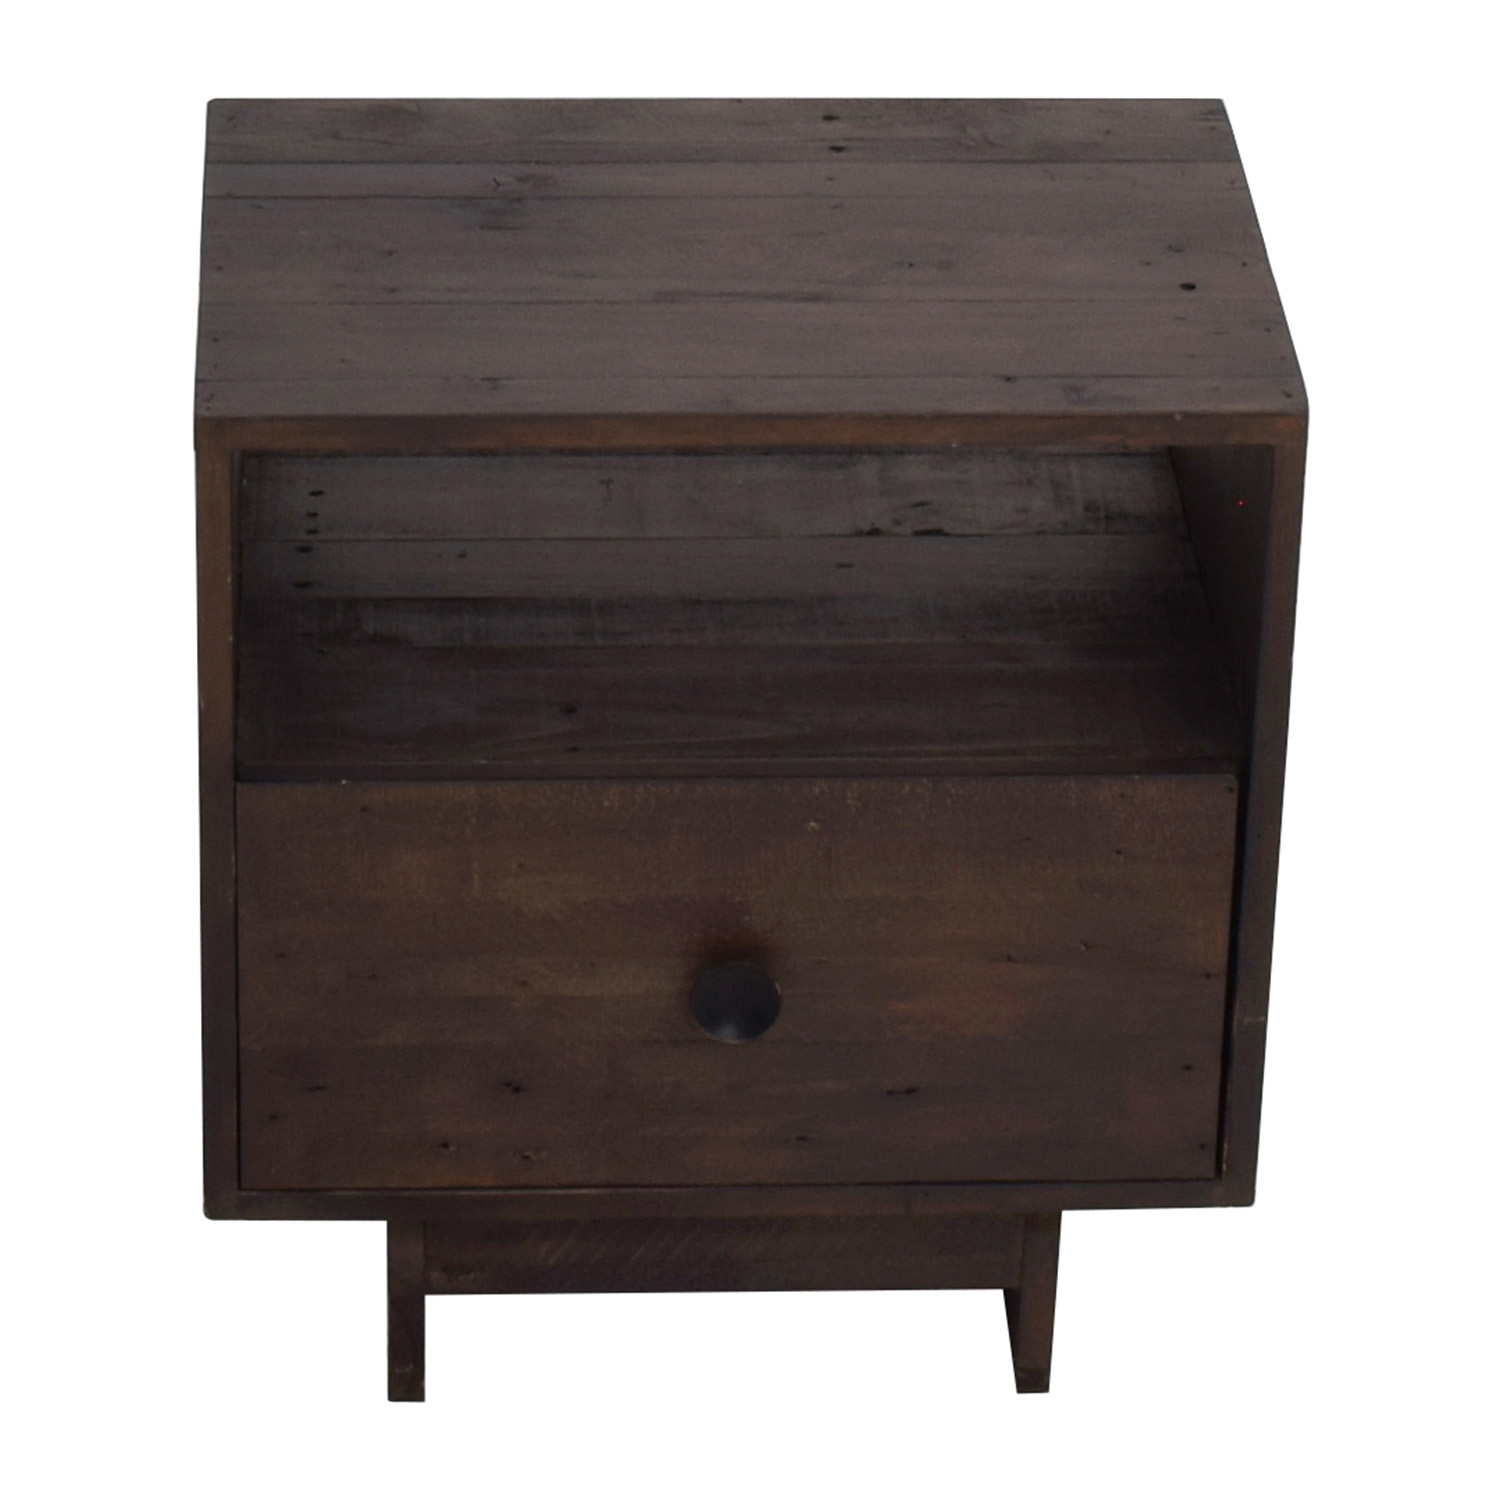 West Elm West Elm Emmerson Reclaimed Wood Nightstand used